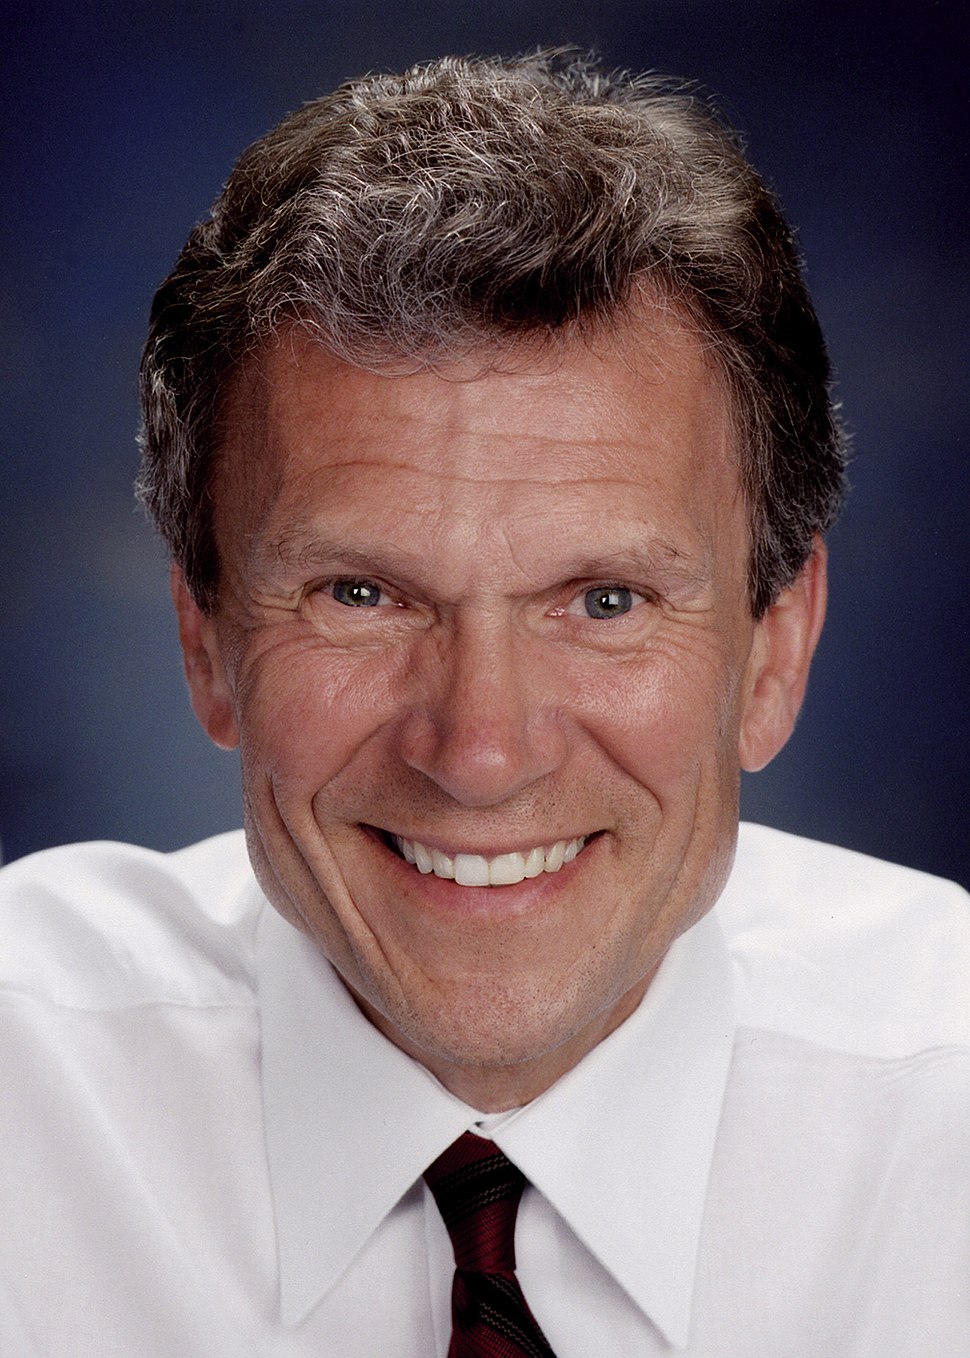 Tom Daschle, official Senate photo